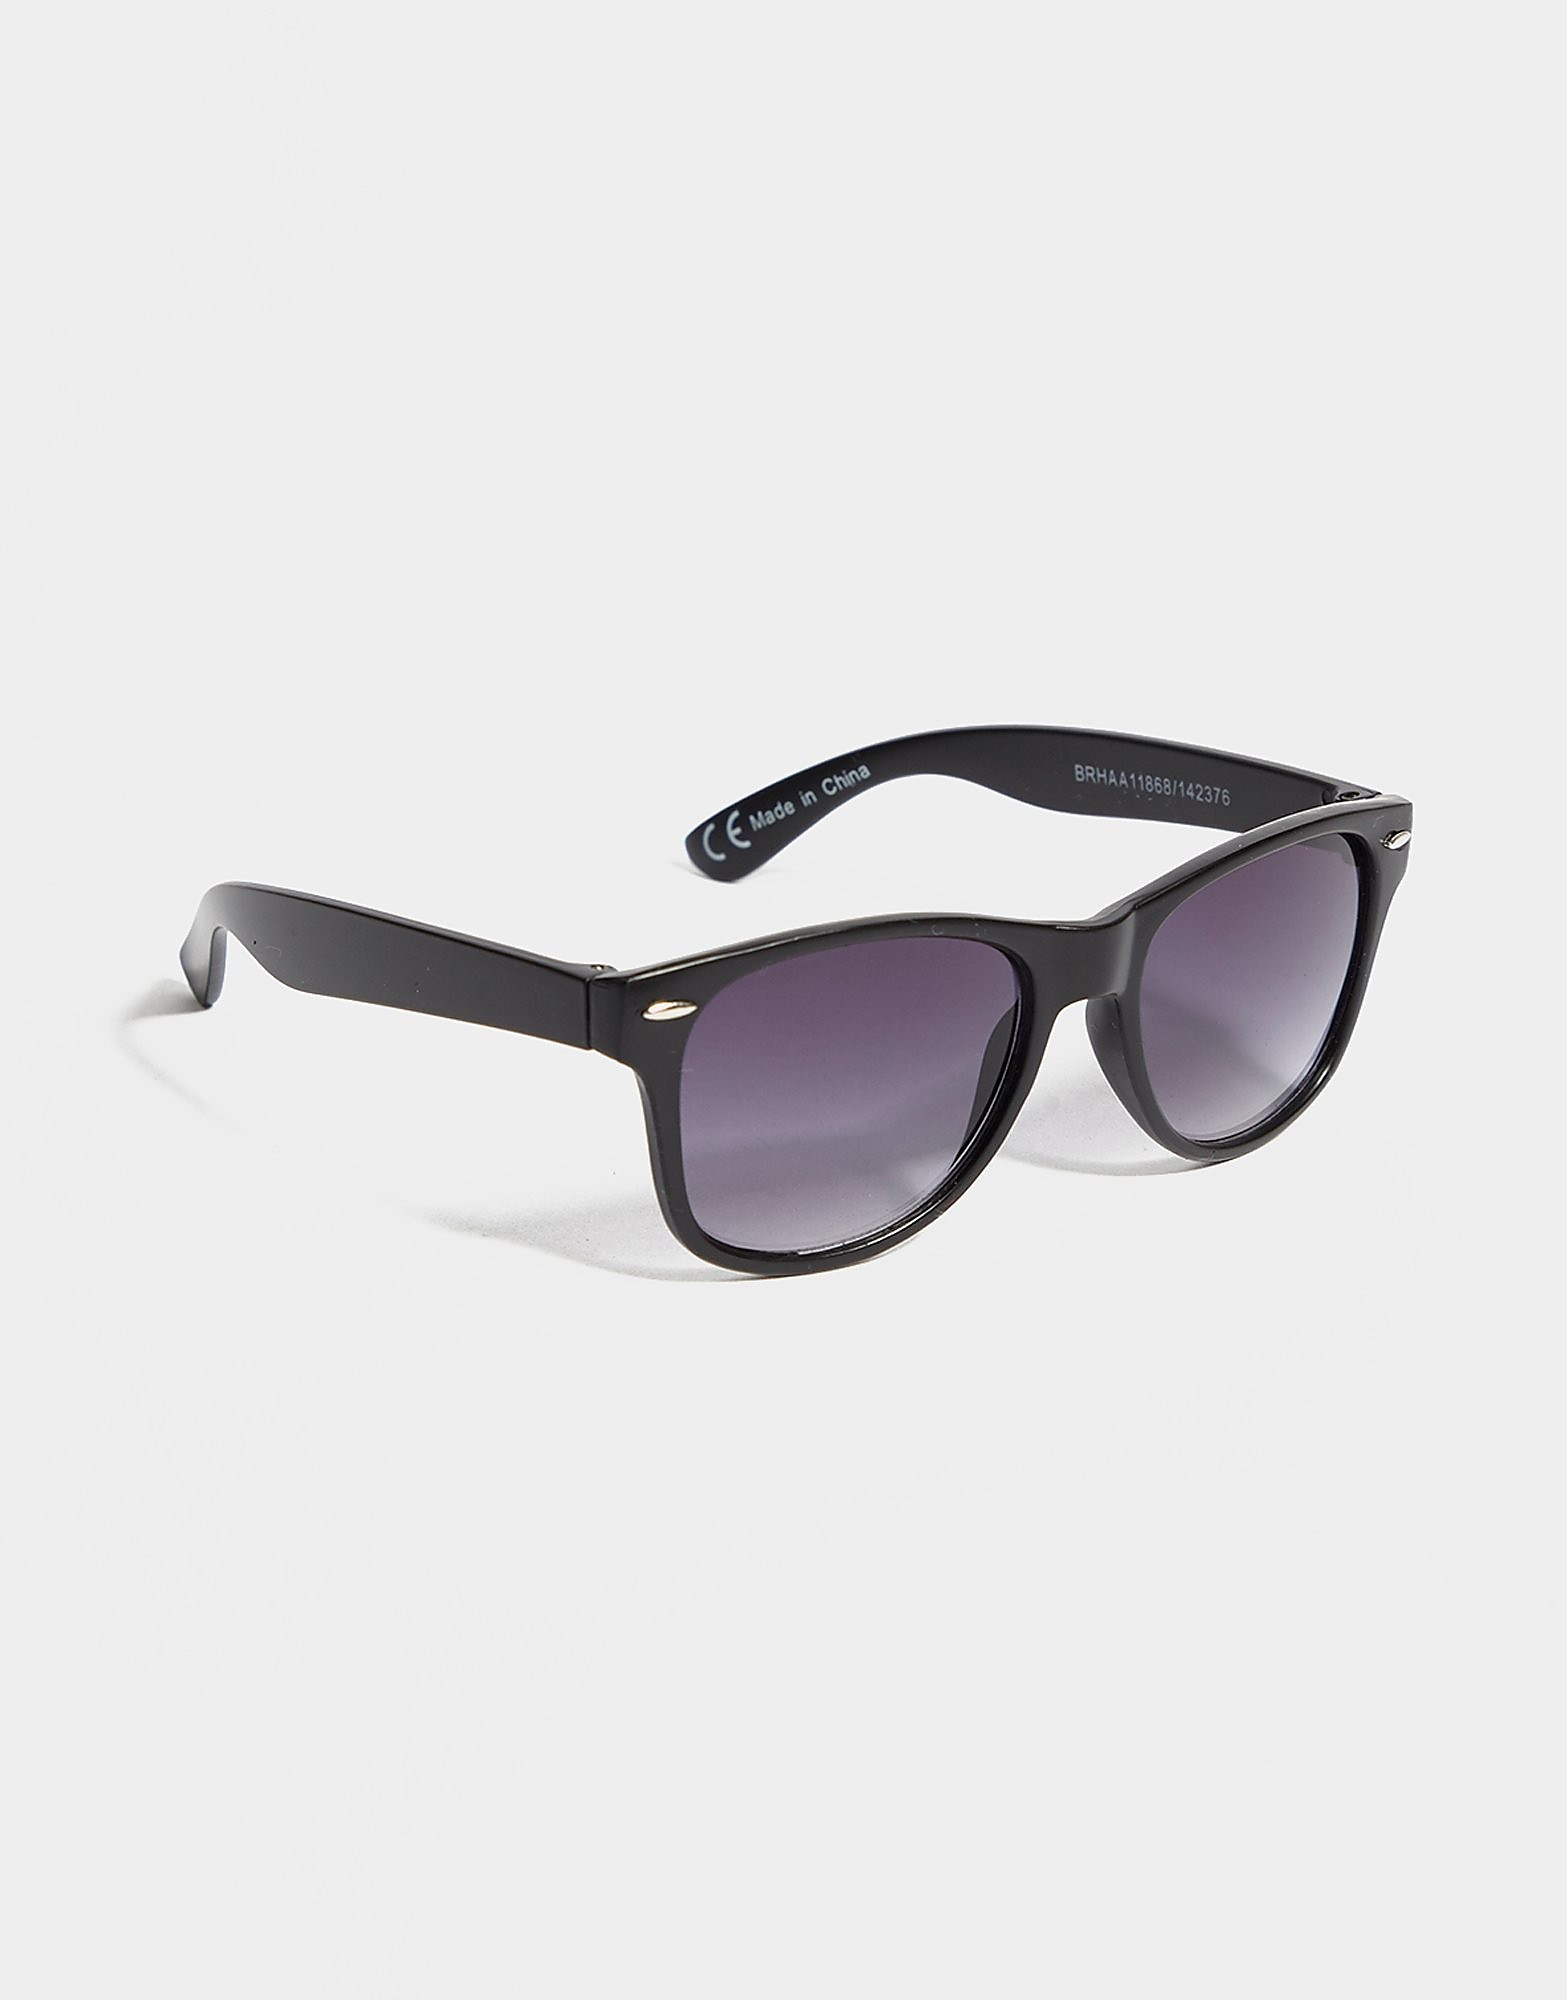 Brookhaven Bobby Sunglasses